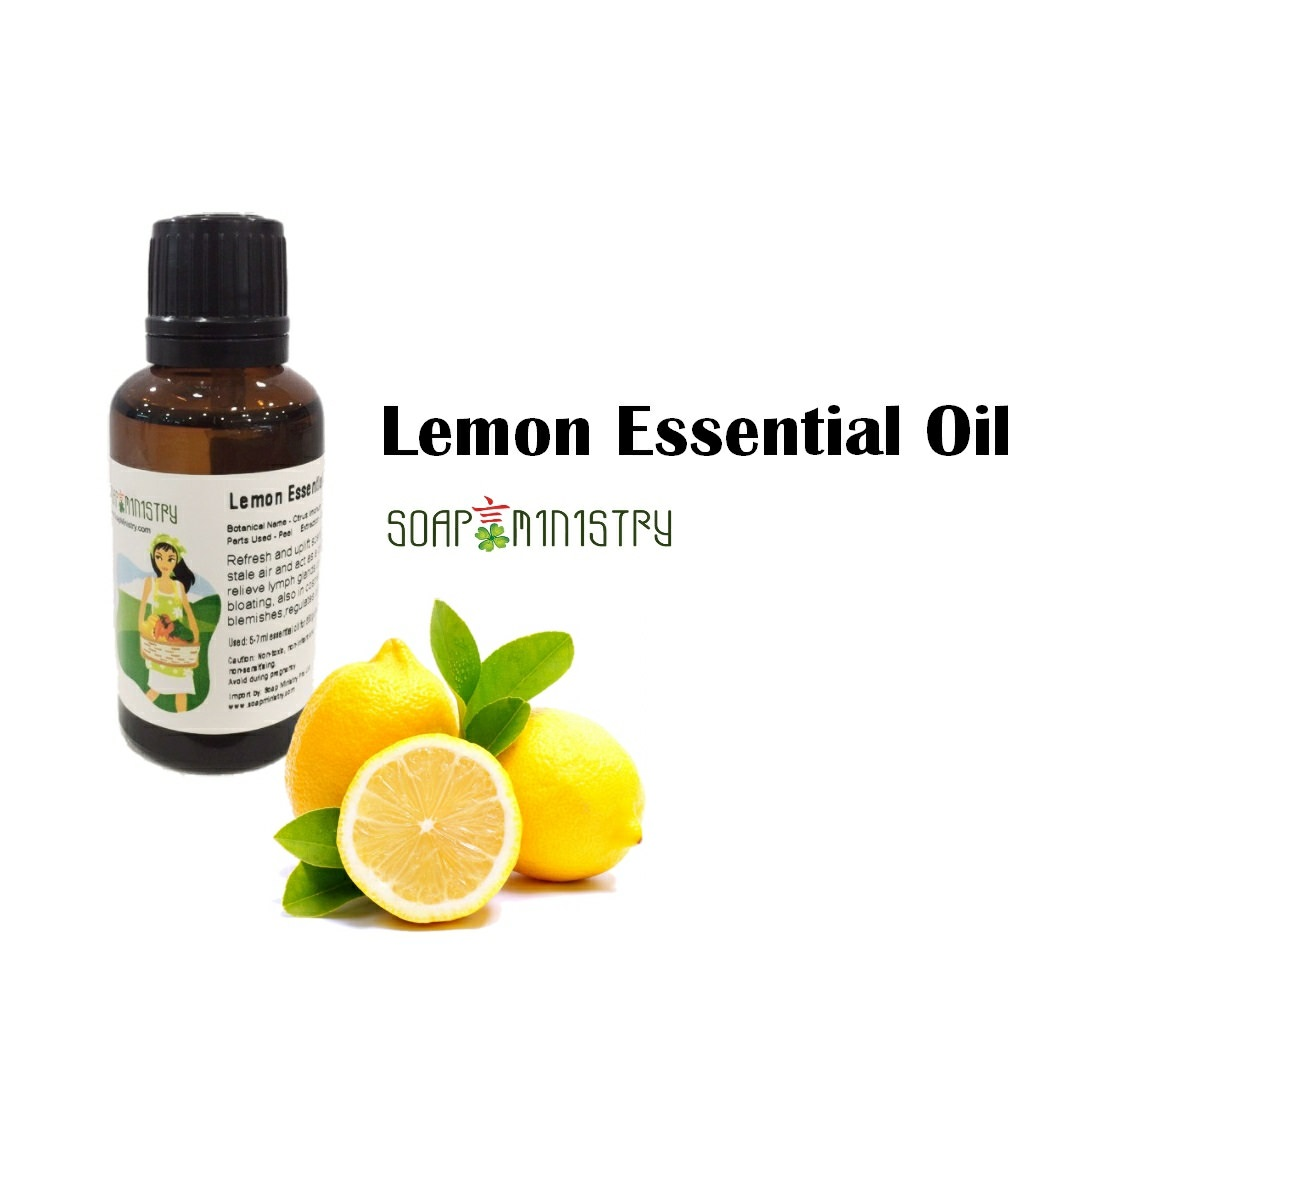 Lemon Essential Oil 1L